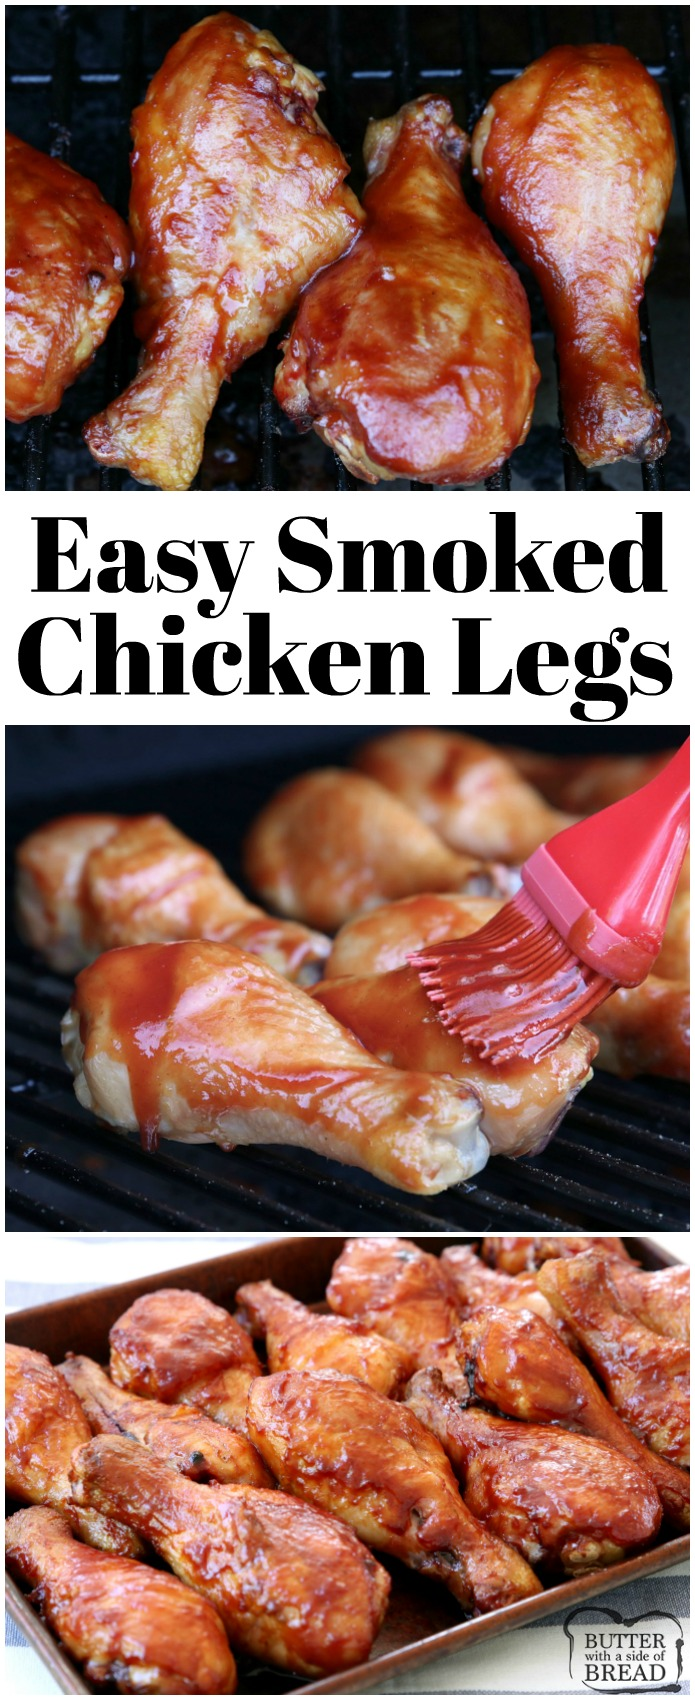 Easy Smoked Chicken Legs made with just a few simple ingredients in 2 hours. Simple recipe for smoking chicken drumsticks during your next BBQ. Perfect recipe to start learning how to use your electric smoker! #chicken #chickenlegs #traeger #smoke #smoker #dinner #grill #food